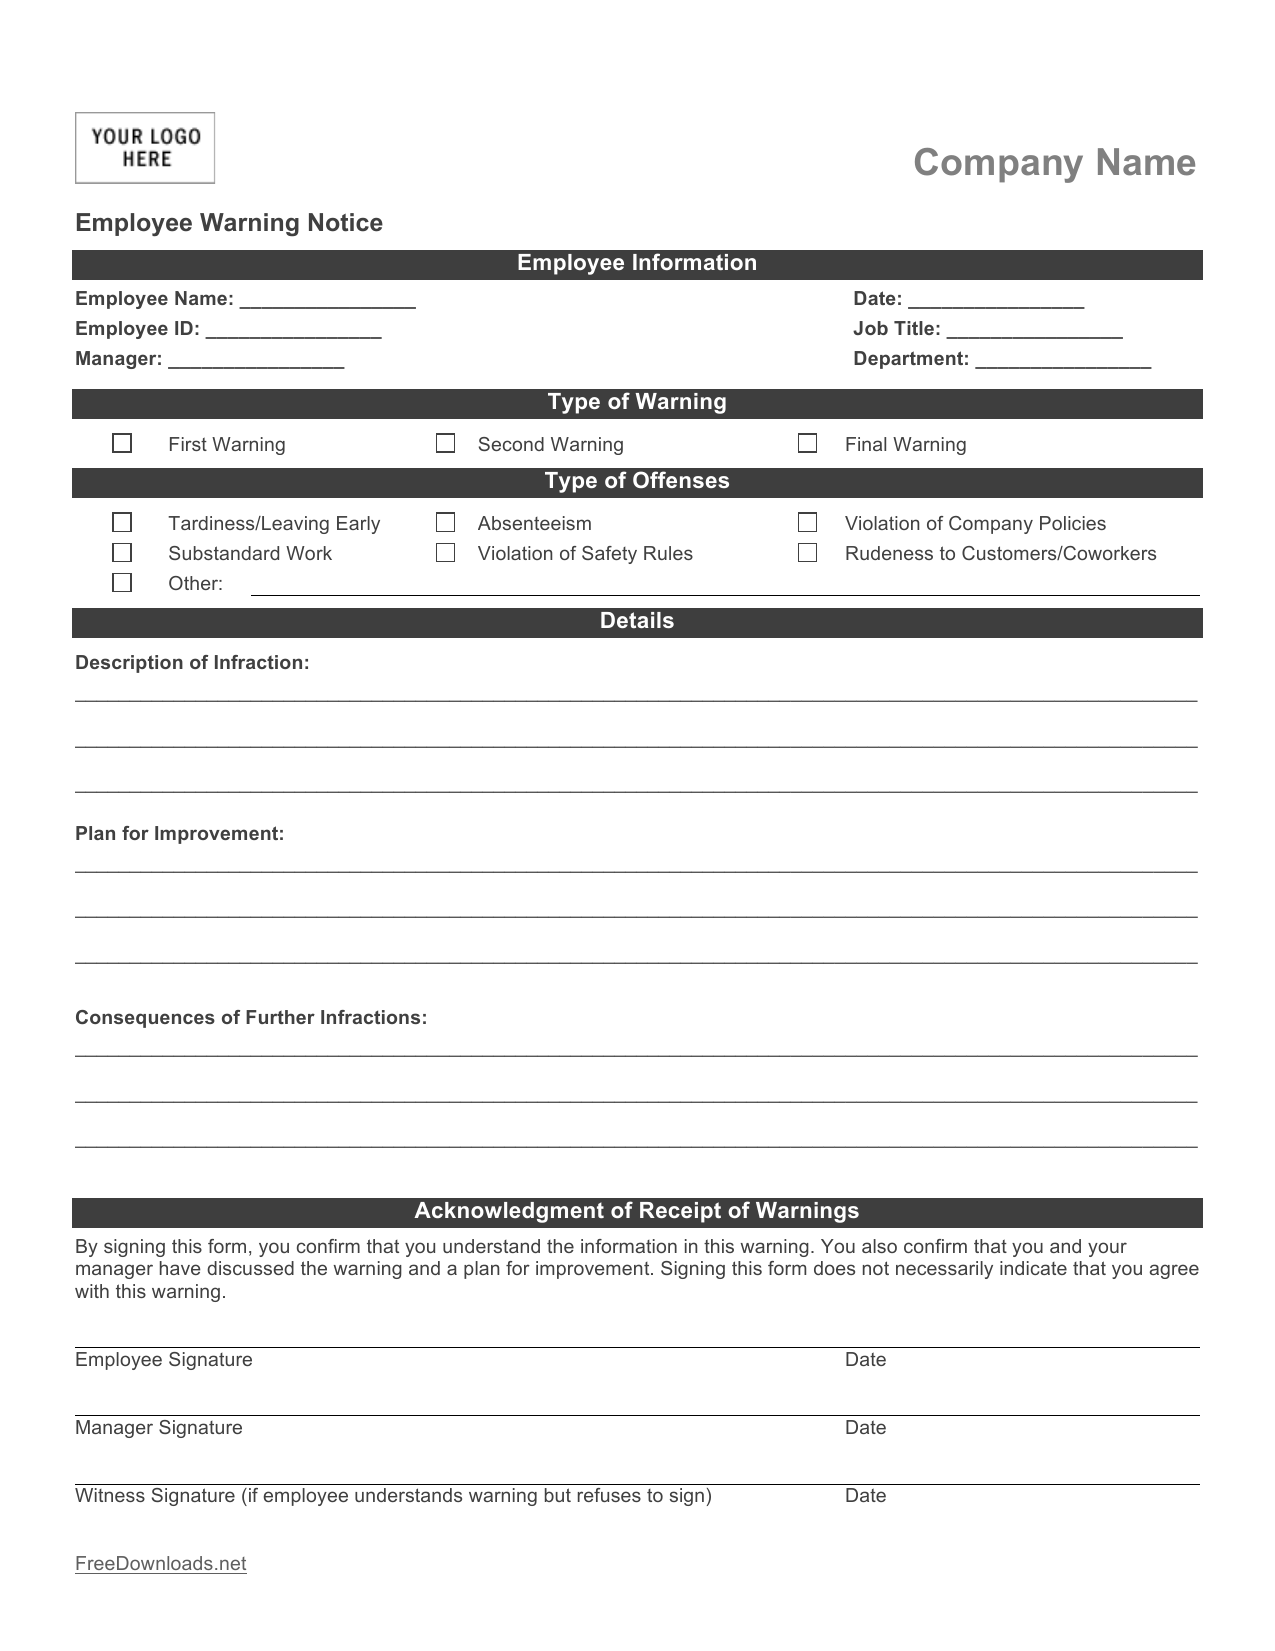 write up form pdf  Download Employee Write-up Form | PDF | RTF | Word | FreeDownloads.net